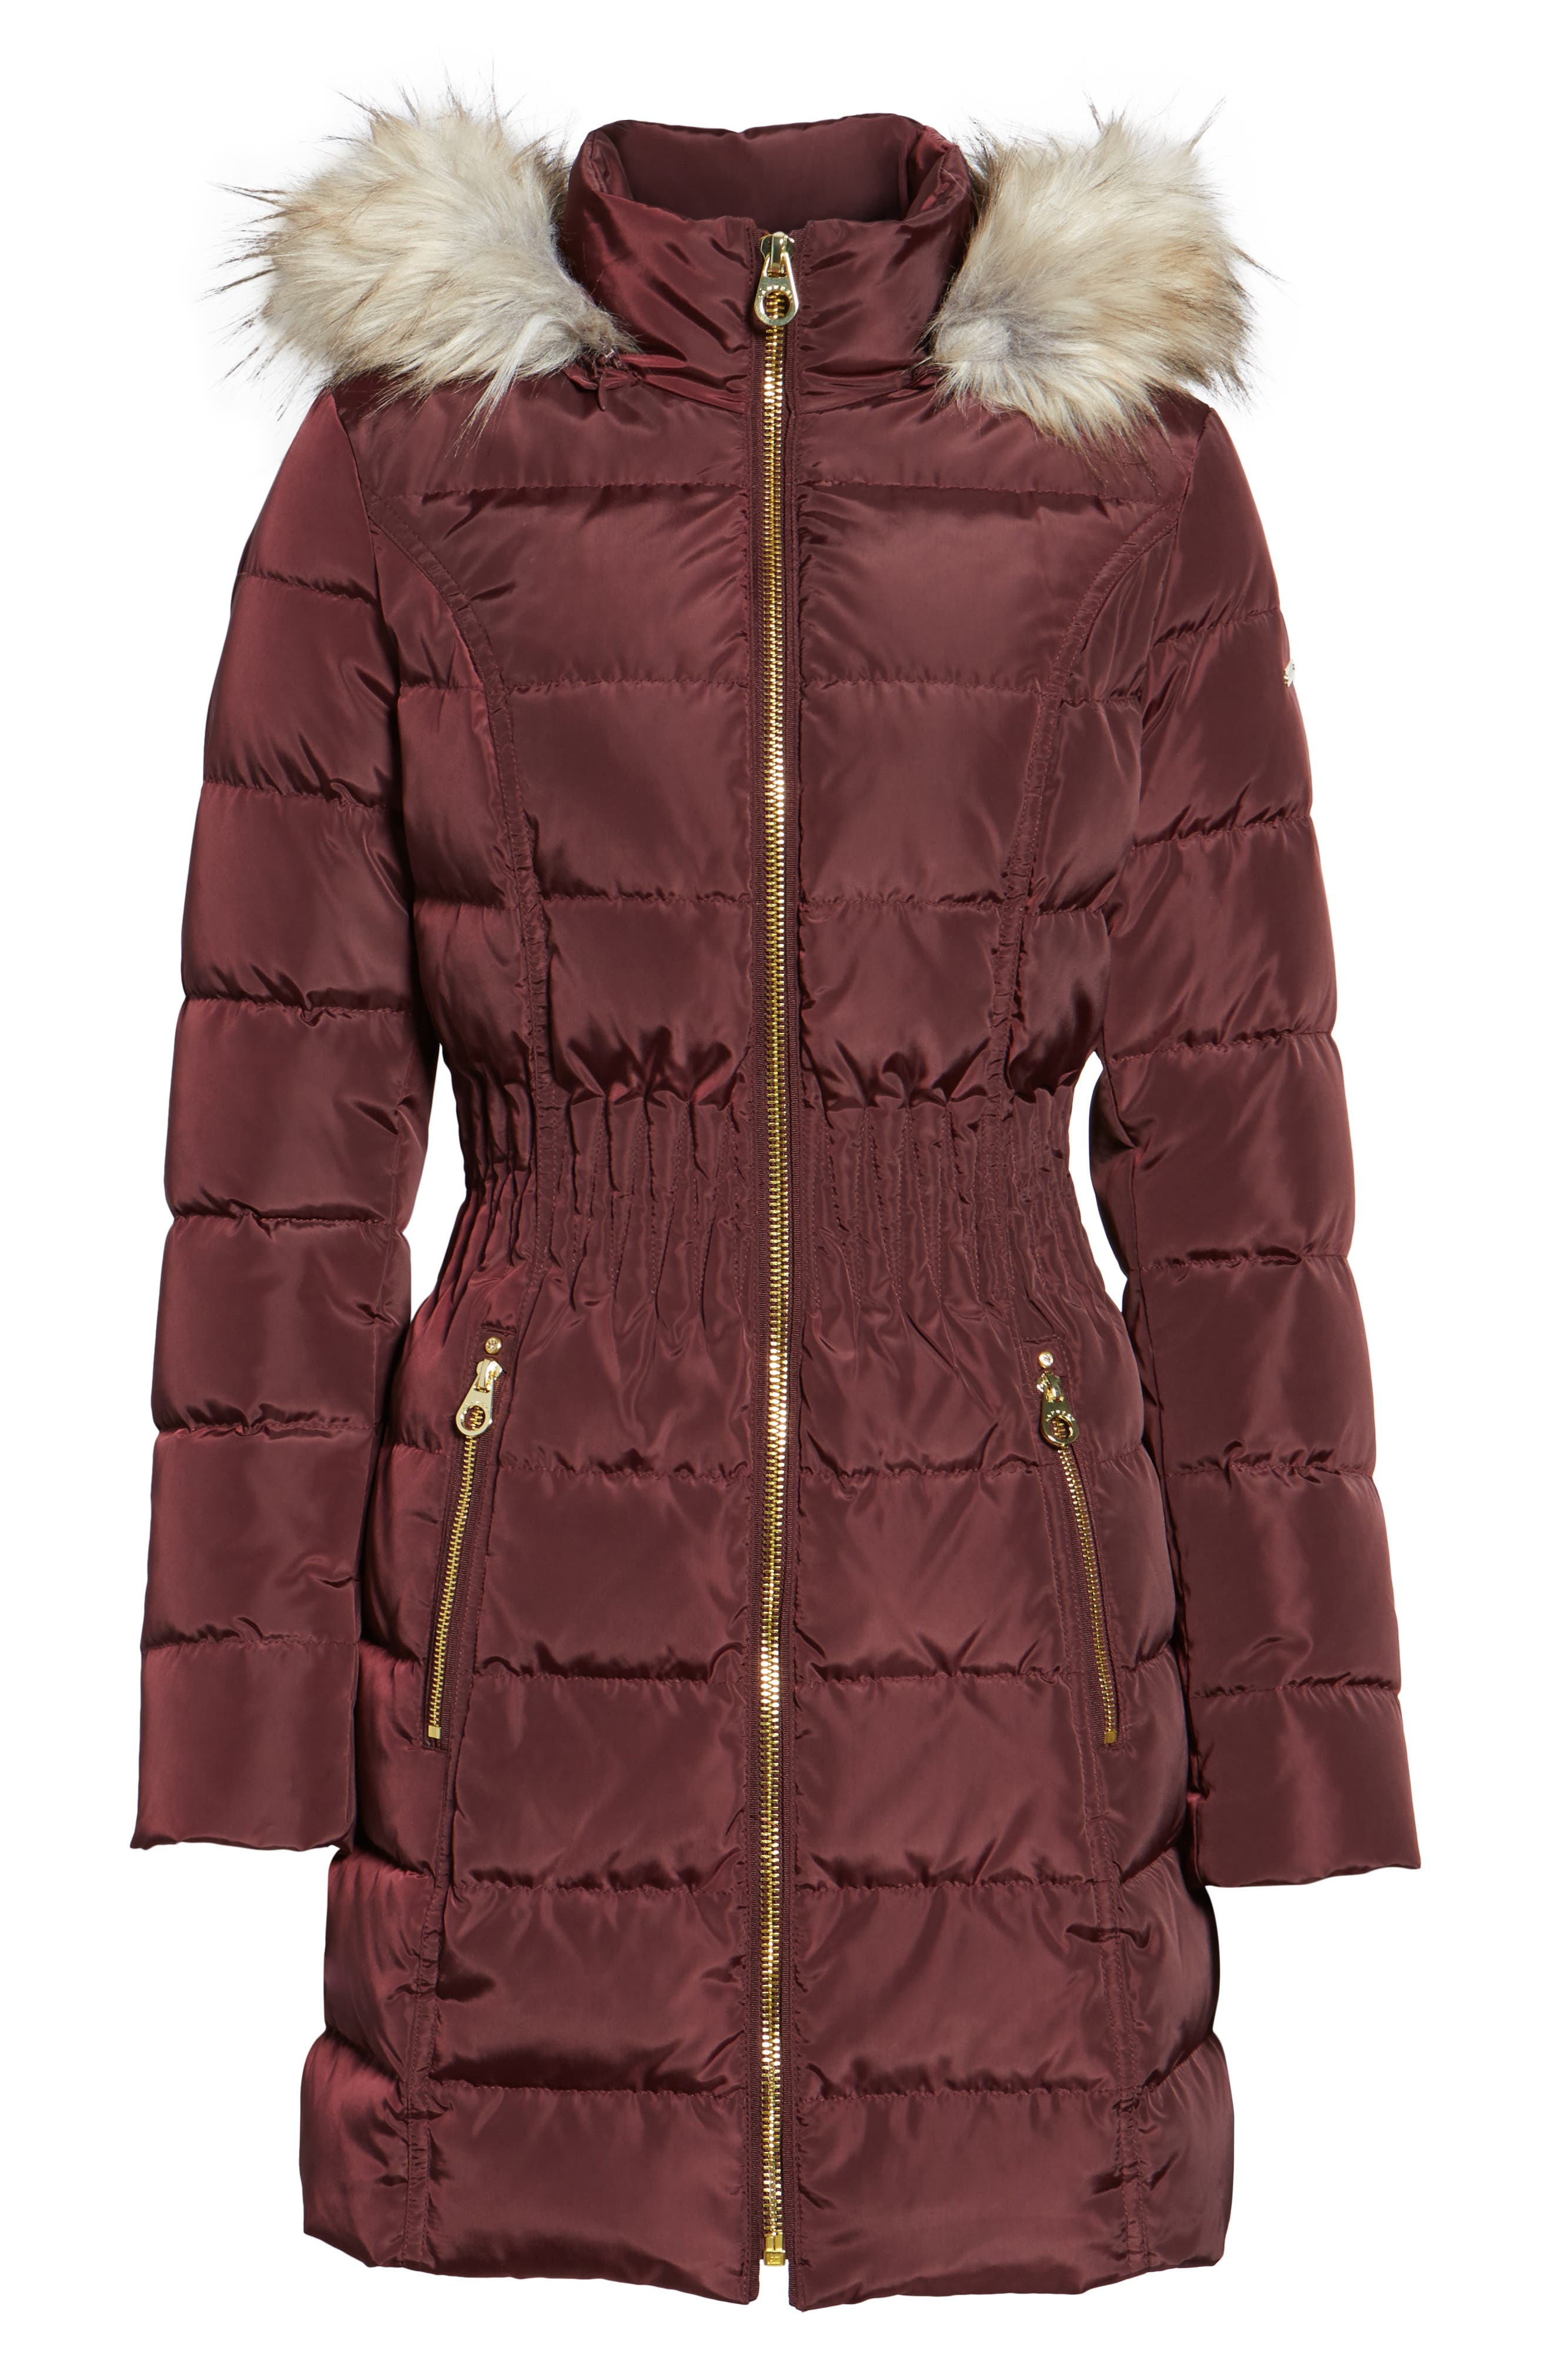 Hooded Quilted Jacket with Faux Fur Trim,                             Alternate thumbnail 6, color,                             Port Royal